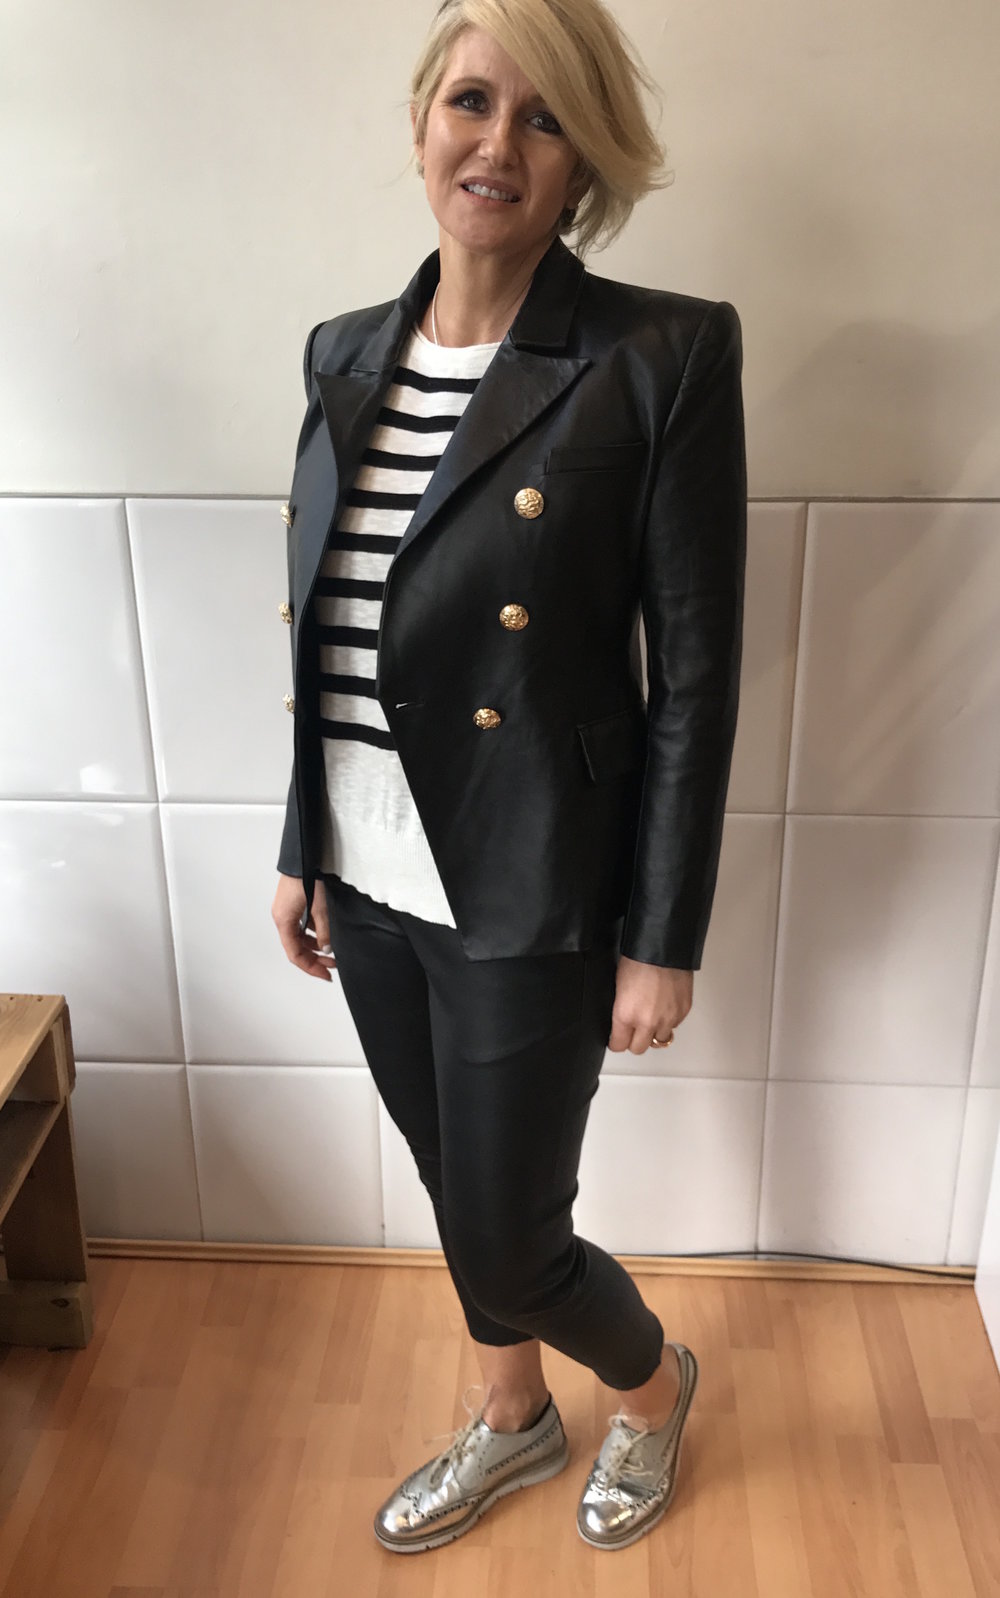 Capri's are huge this Spring 17 season. These Italian leather melted into my legs. Styled simply with a long sleeve striped top and a stunning 80's style (shoulder pads and all) leather jacket.